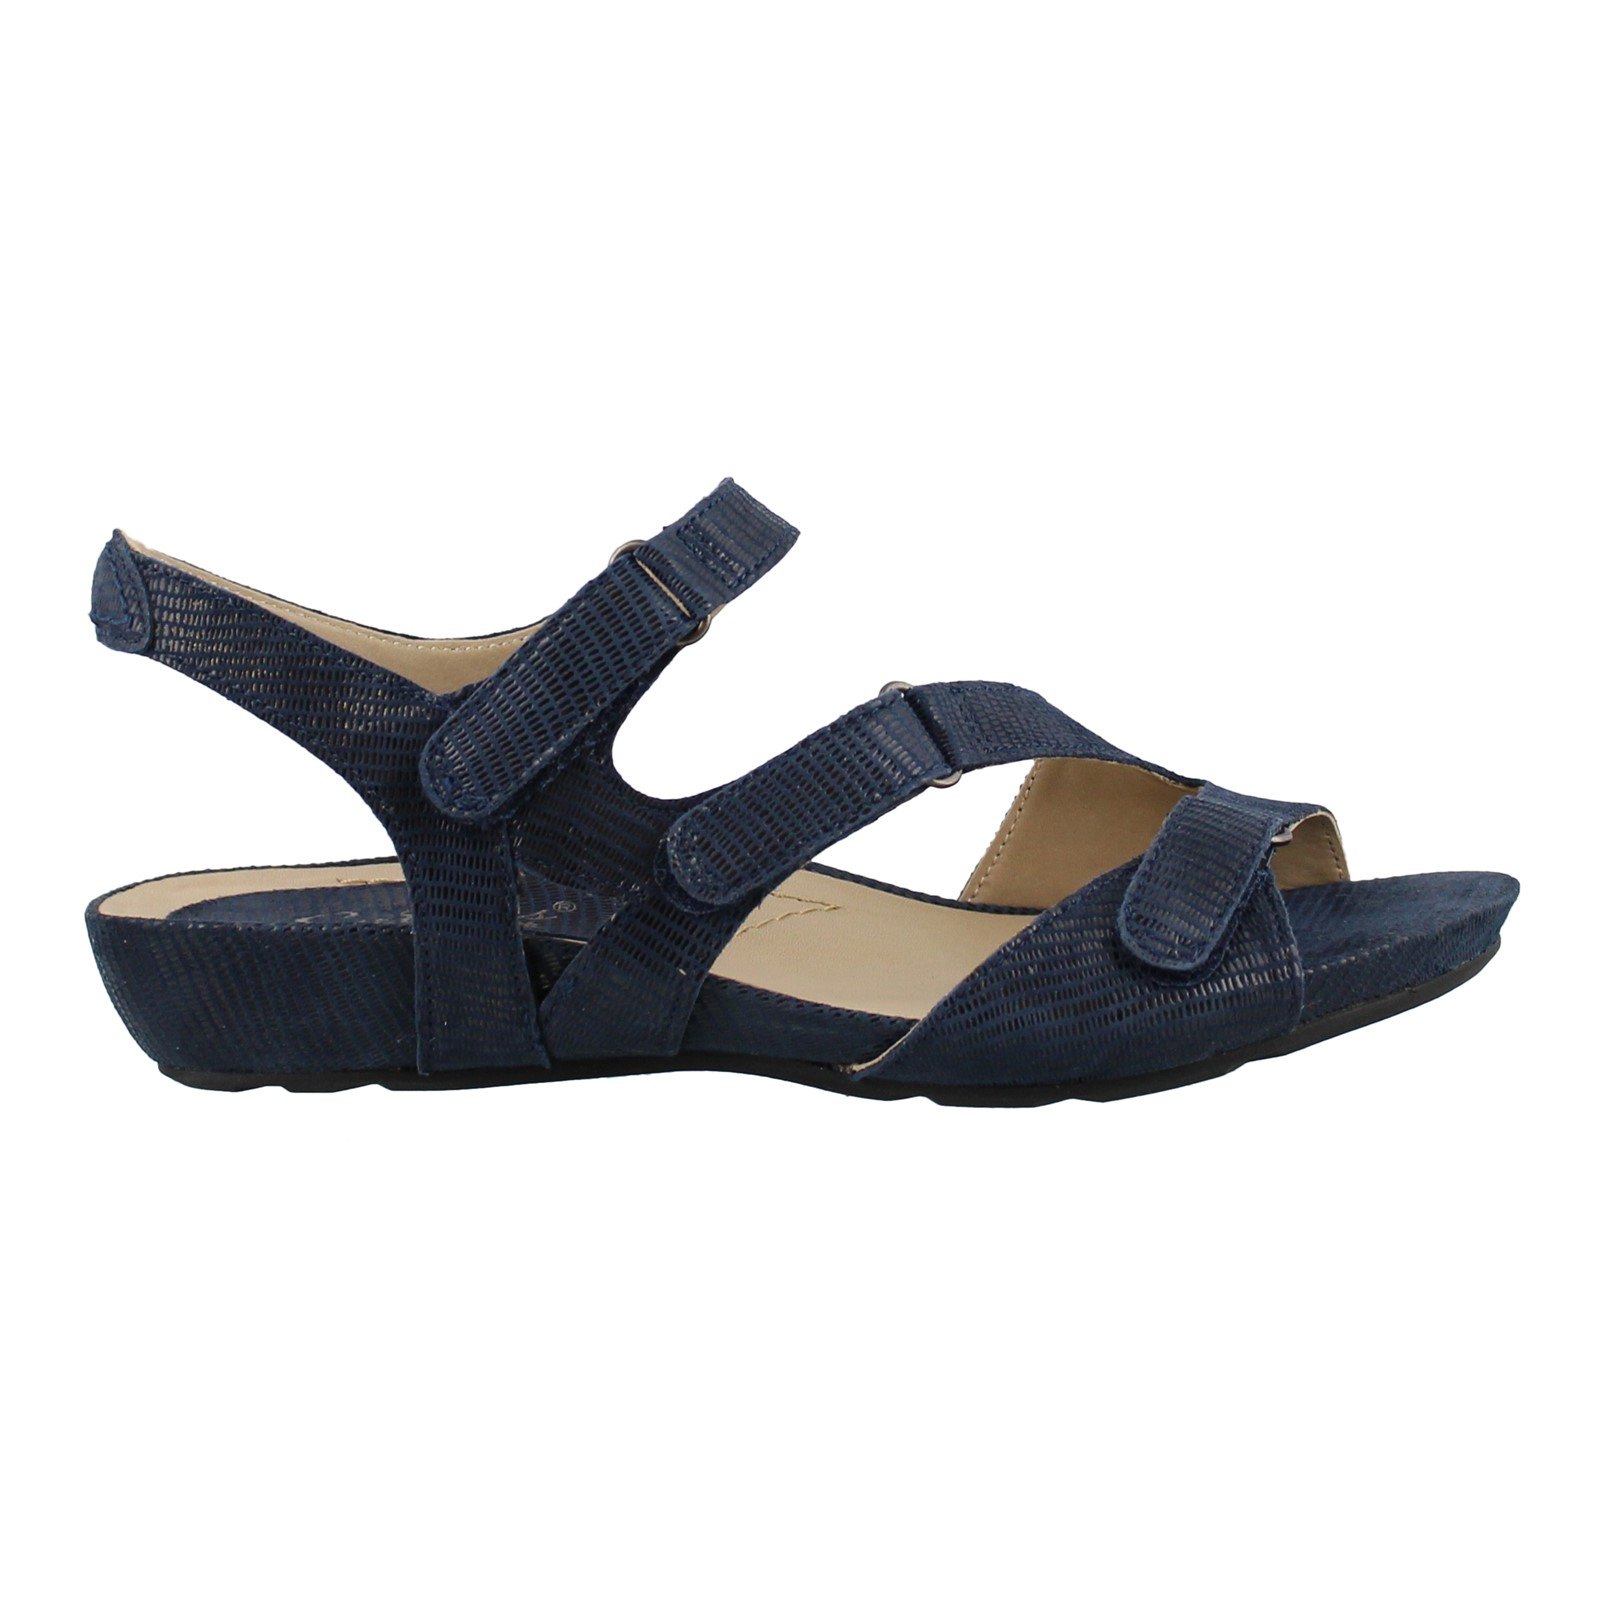 Women's Earthies, Nova Low Heel Sandals